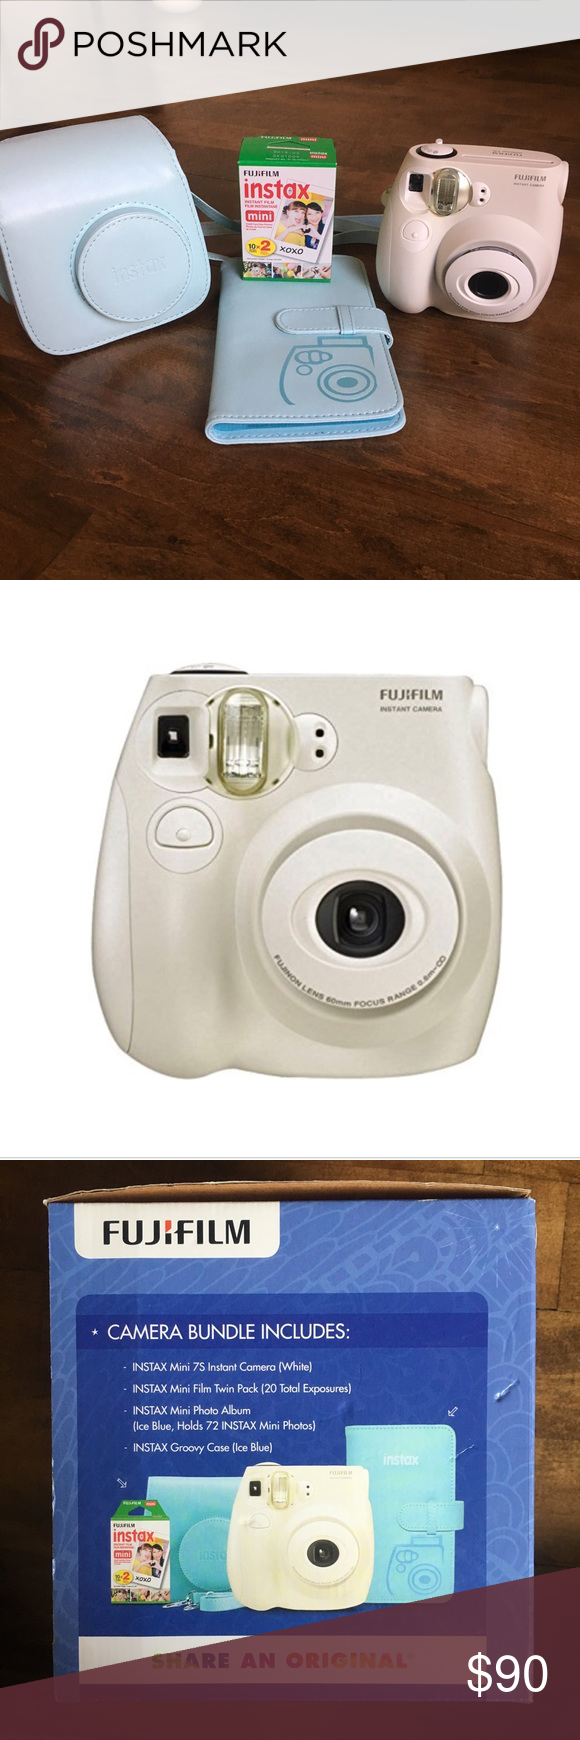 cd8adbbf999 Fujifilm instax mini 7s bundle New in the box. Comes with white Polaroid  camera, blue camera case/bag, a photo album, and 2 packs of film. fujifilm  Other